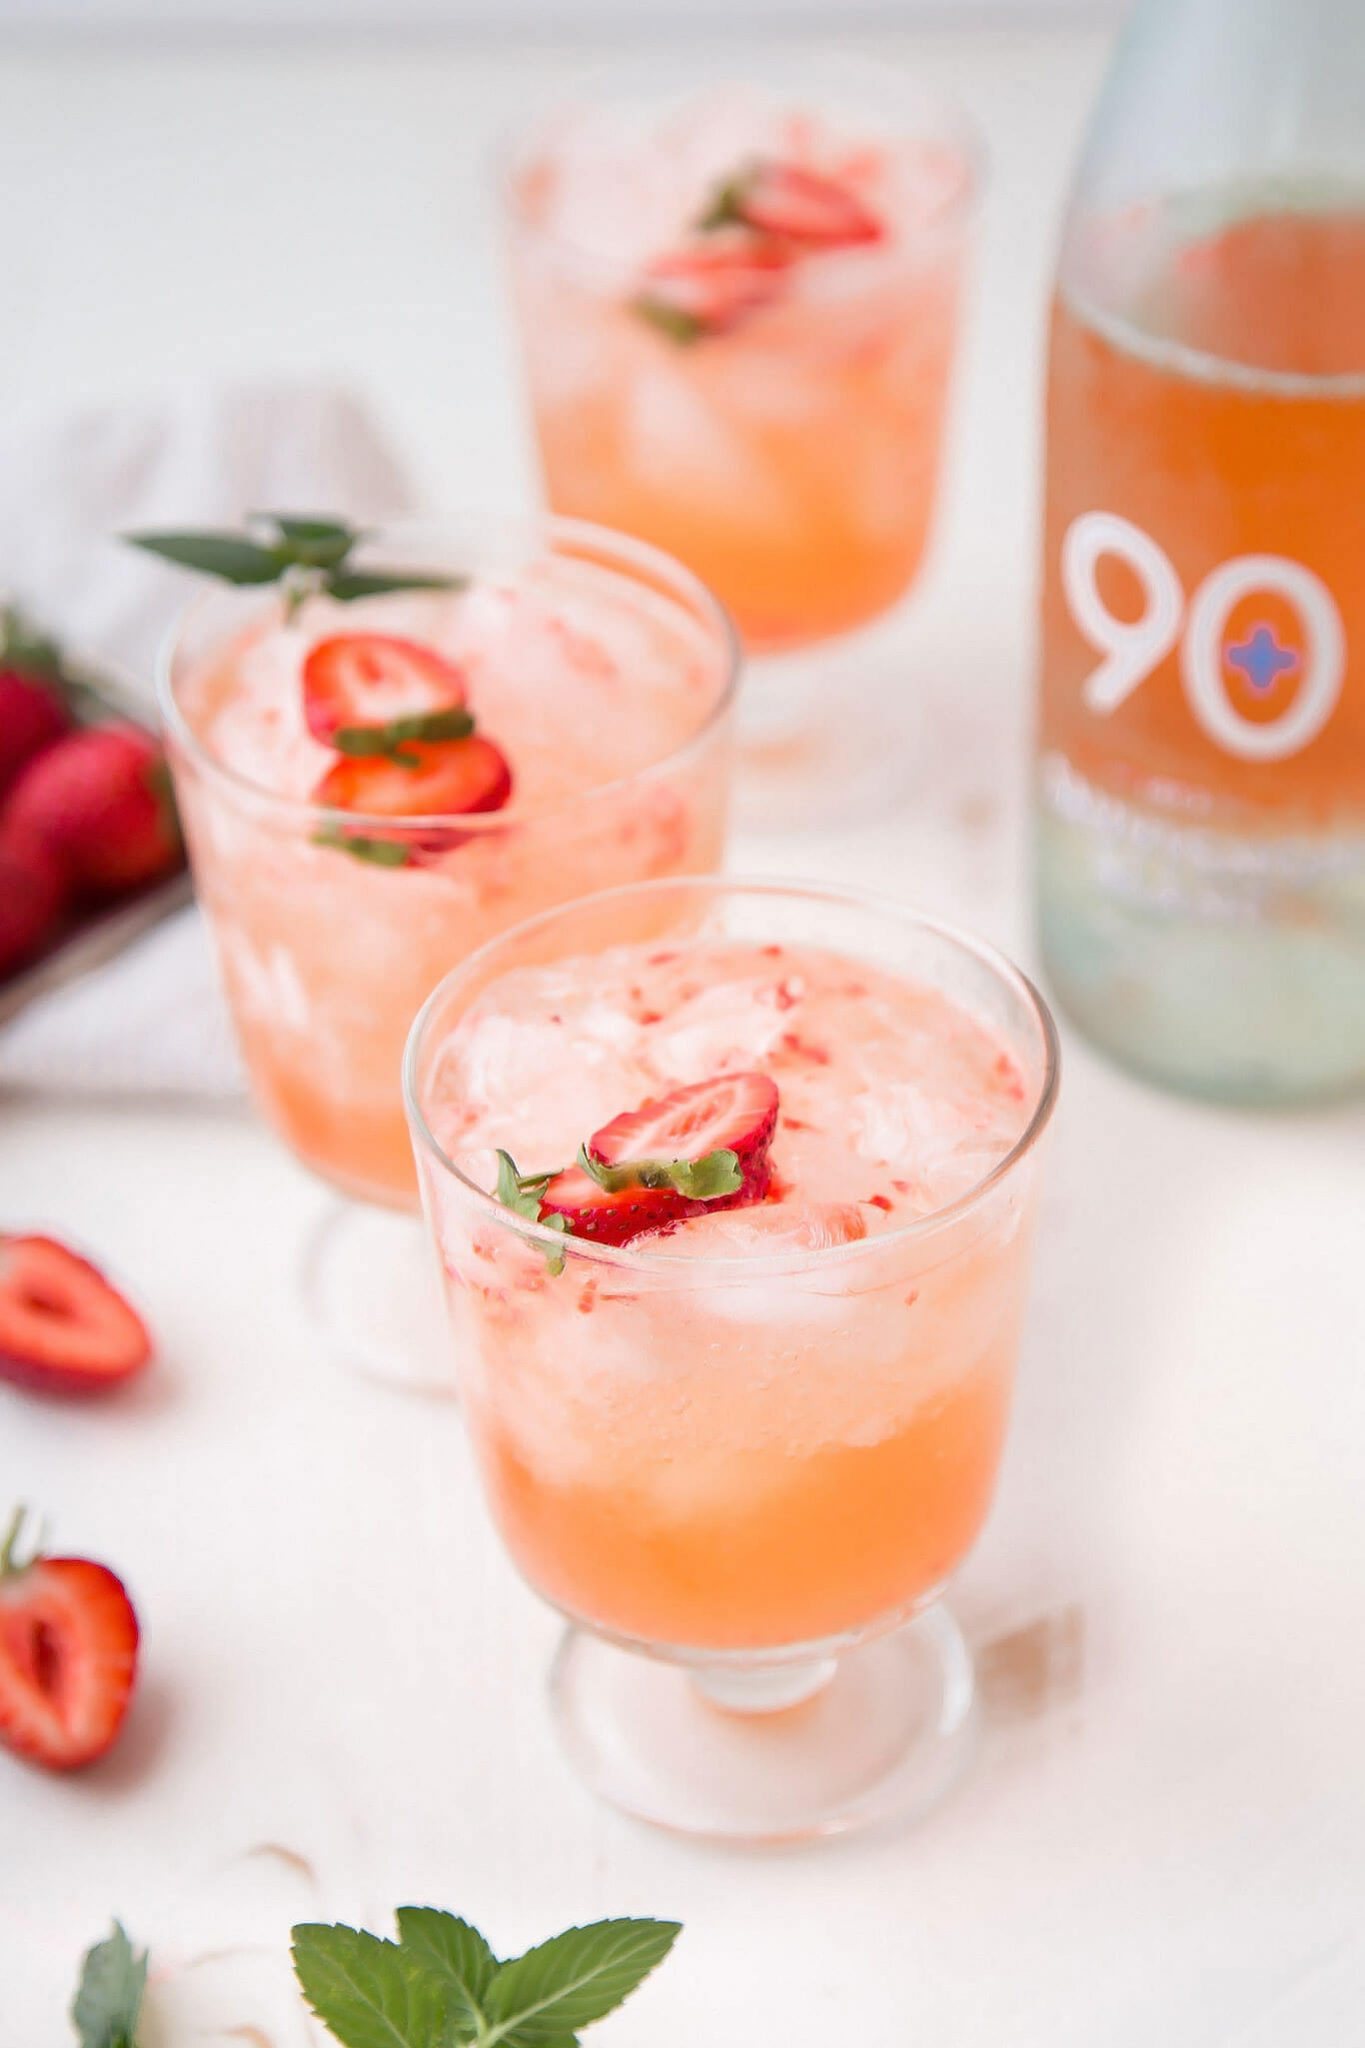 This Strawberry Sauvignon Blanc Cocktail combines wine, vodka, fresh strawberries & soda water for a thirst quenching cocktail that's perfect for summer!